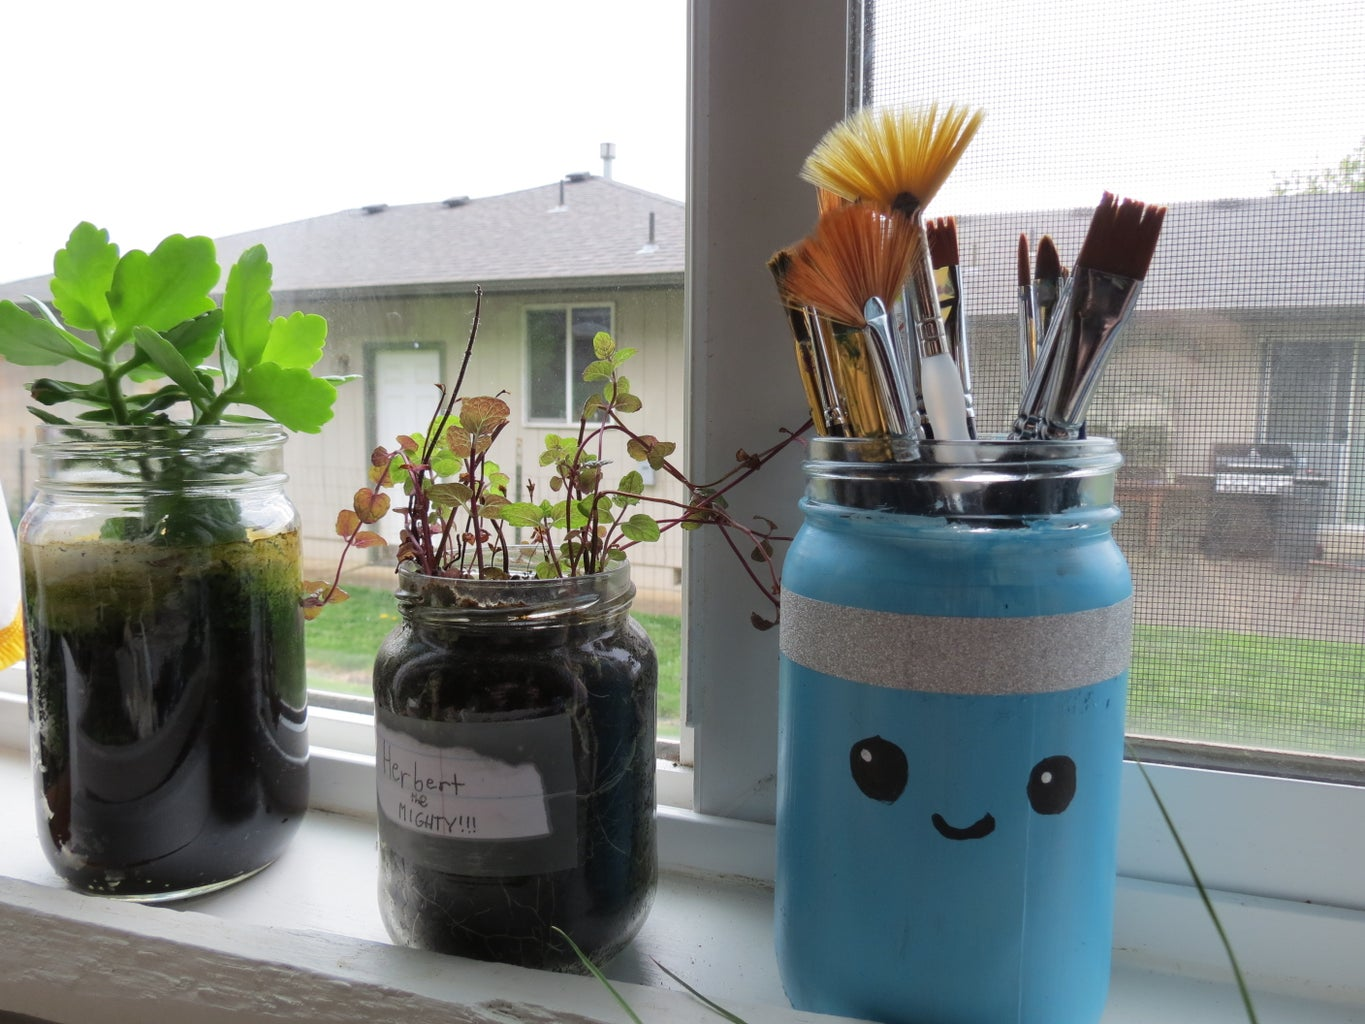 Find a Use for Your Darling Little Jars!